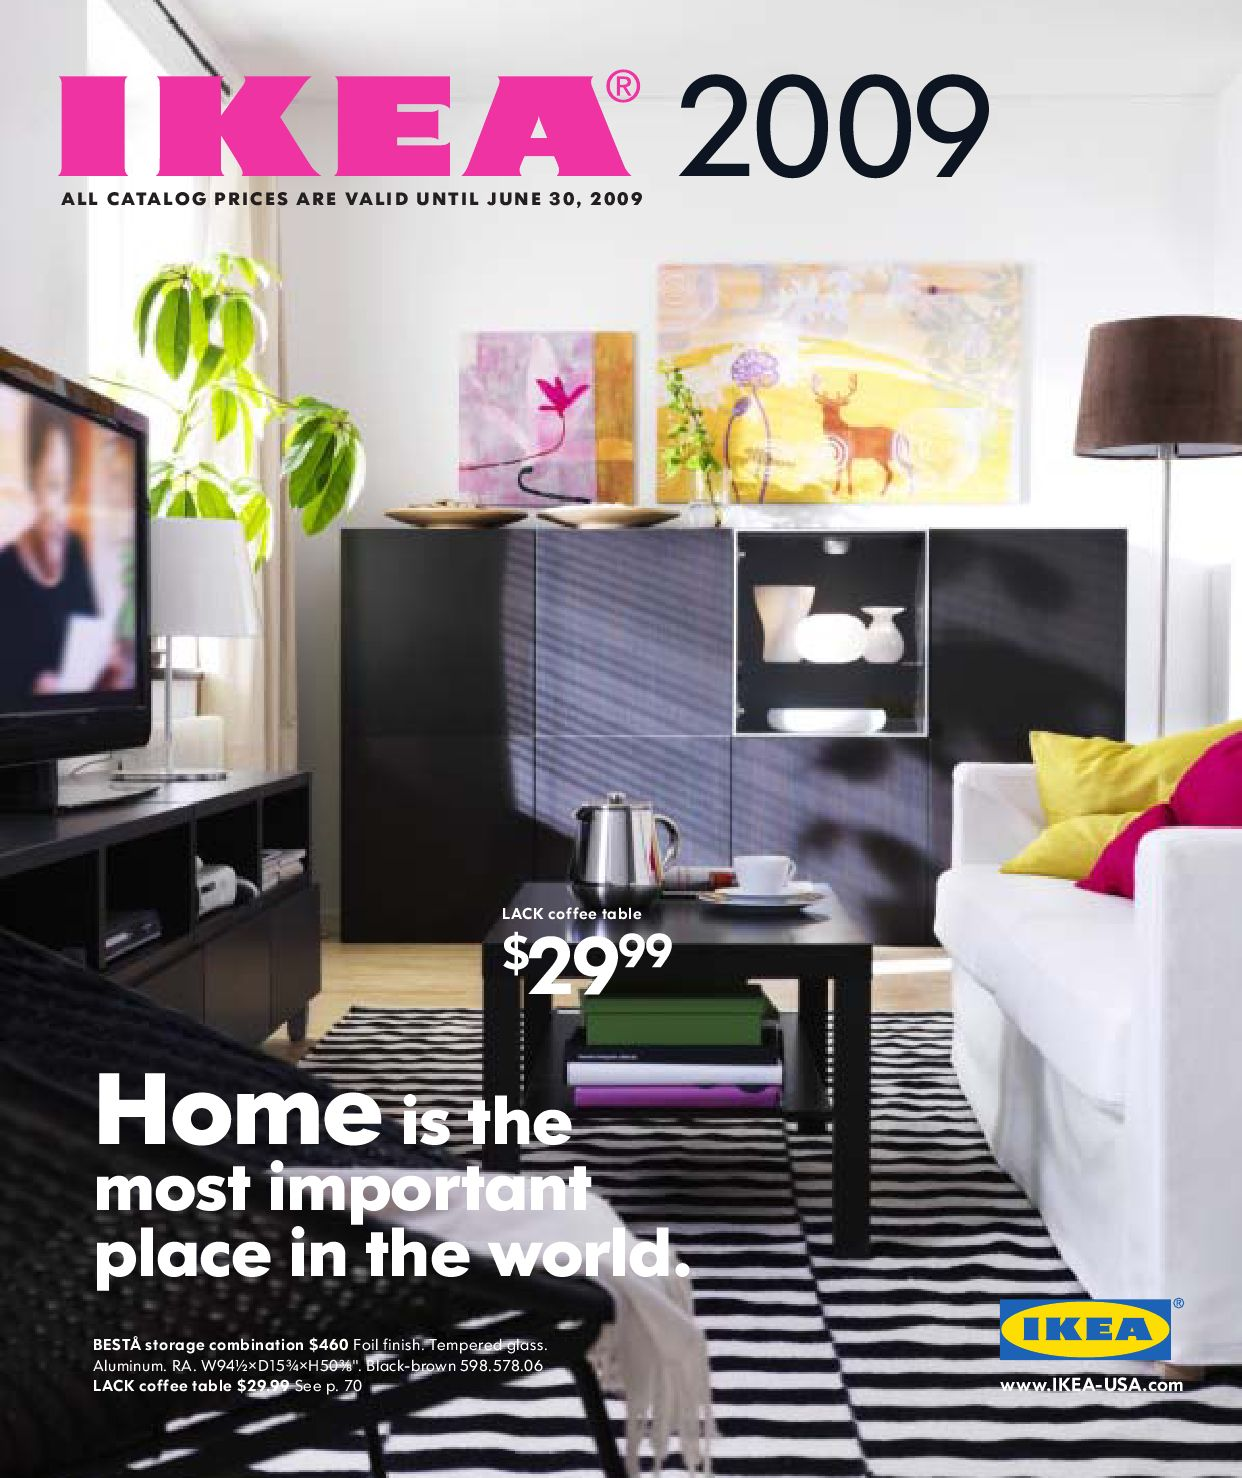 Ikea 2009 catalogue by muhammad mansour issuu - Catalogo ikea pdf ...